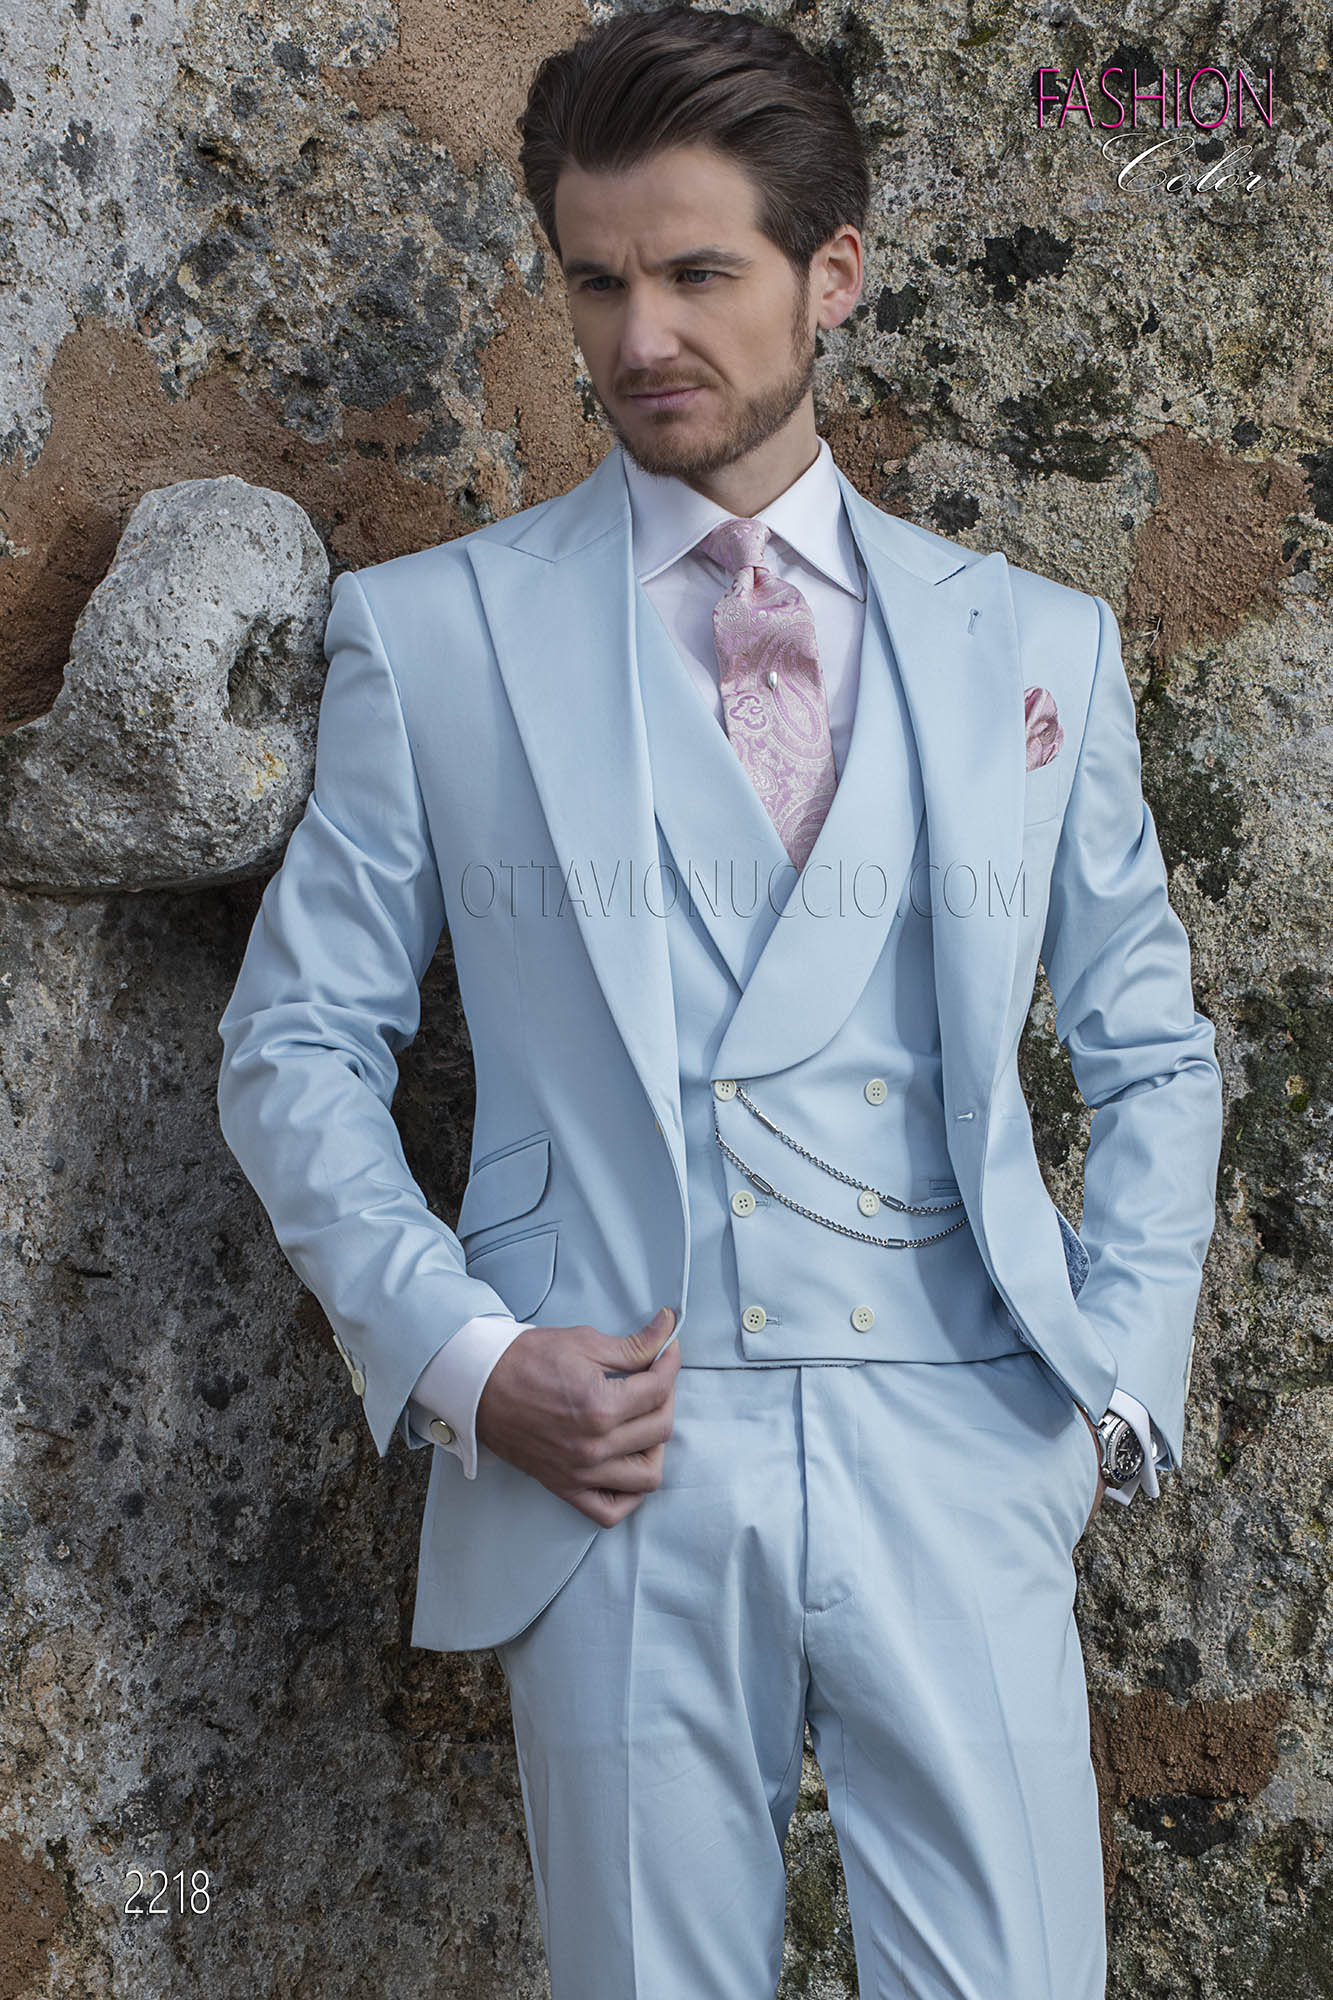 Italian spring summer wedding groom suit in sky-blue cotton